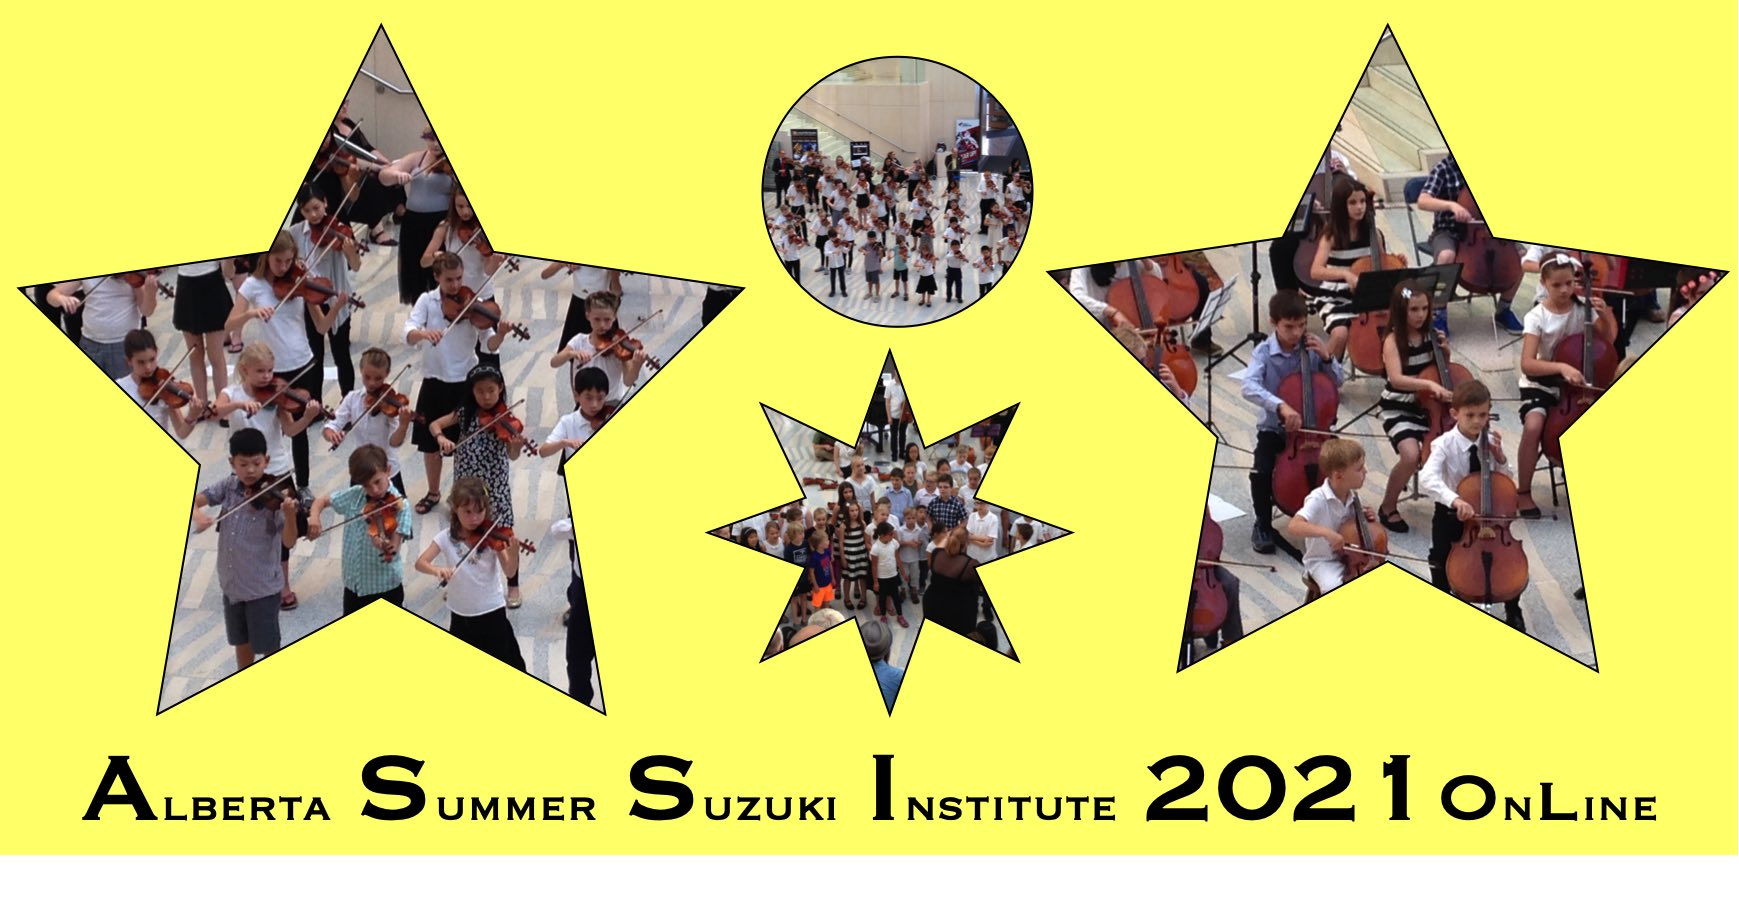 Alberta Summer Suzuki Institute